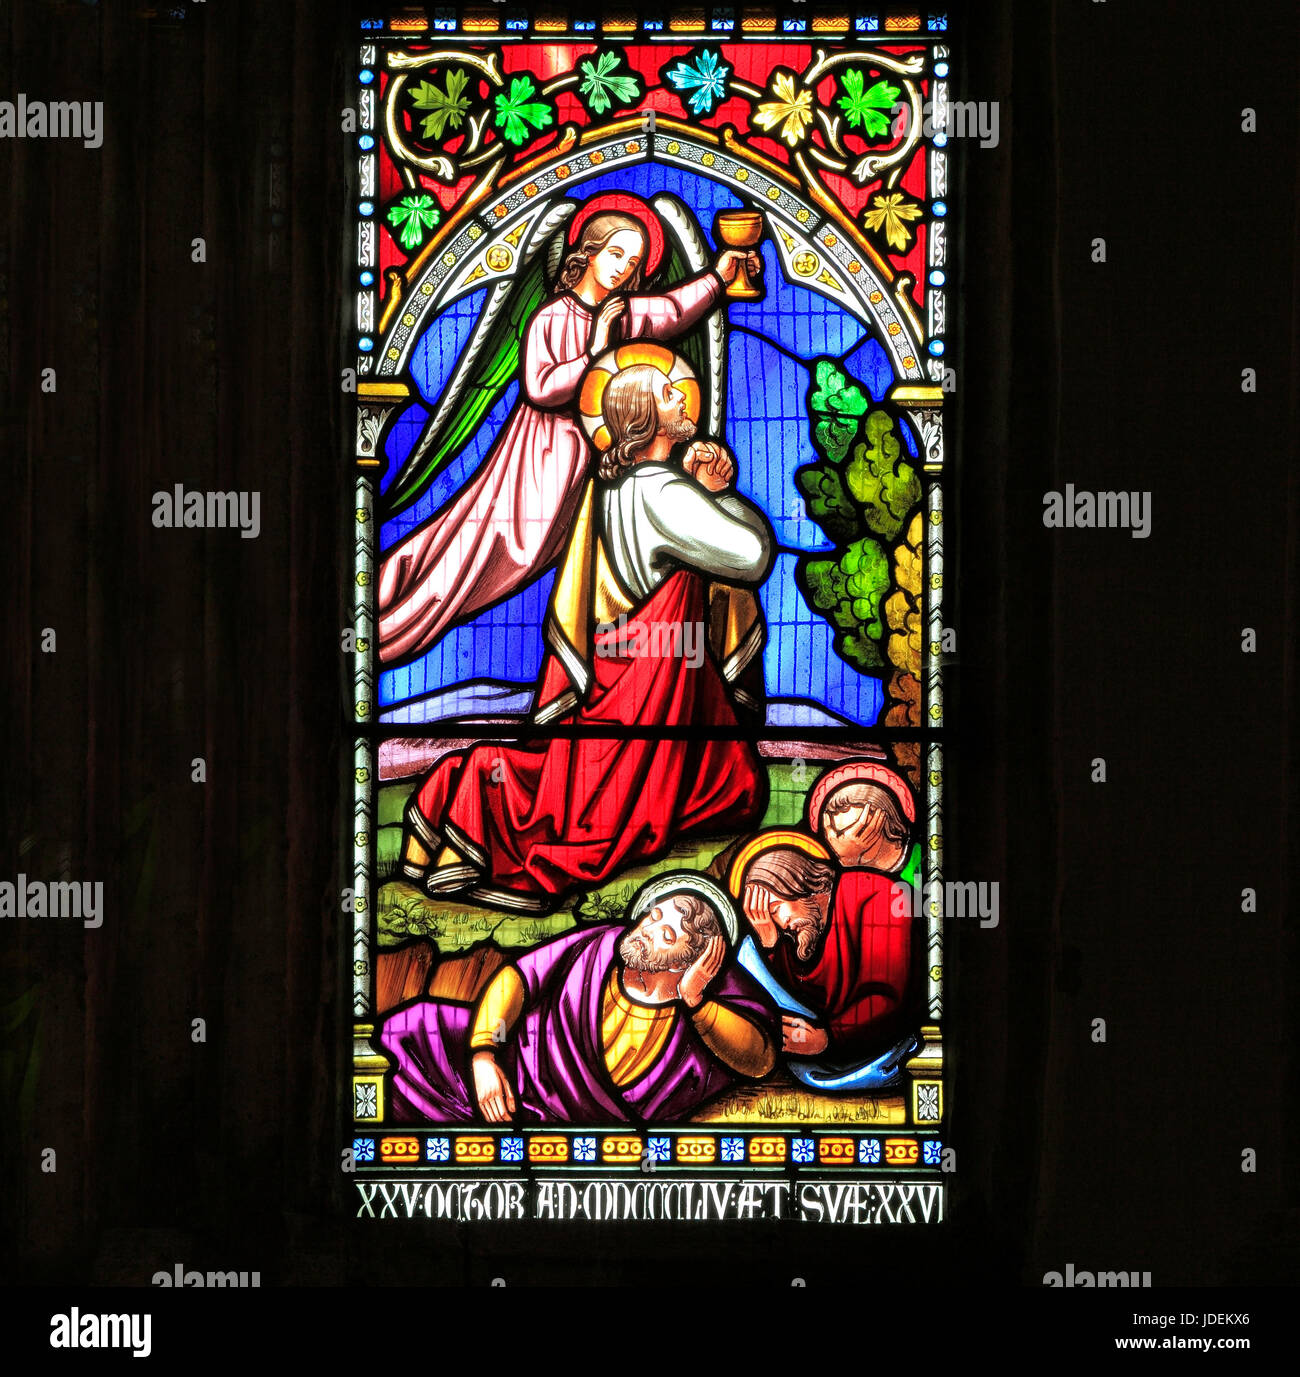 Story of Easter, Jesus prays in Garden of Gethsemane, by the Mount of Olives, while disciples sleep, stained glass - Stock Image